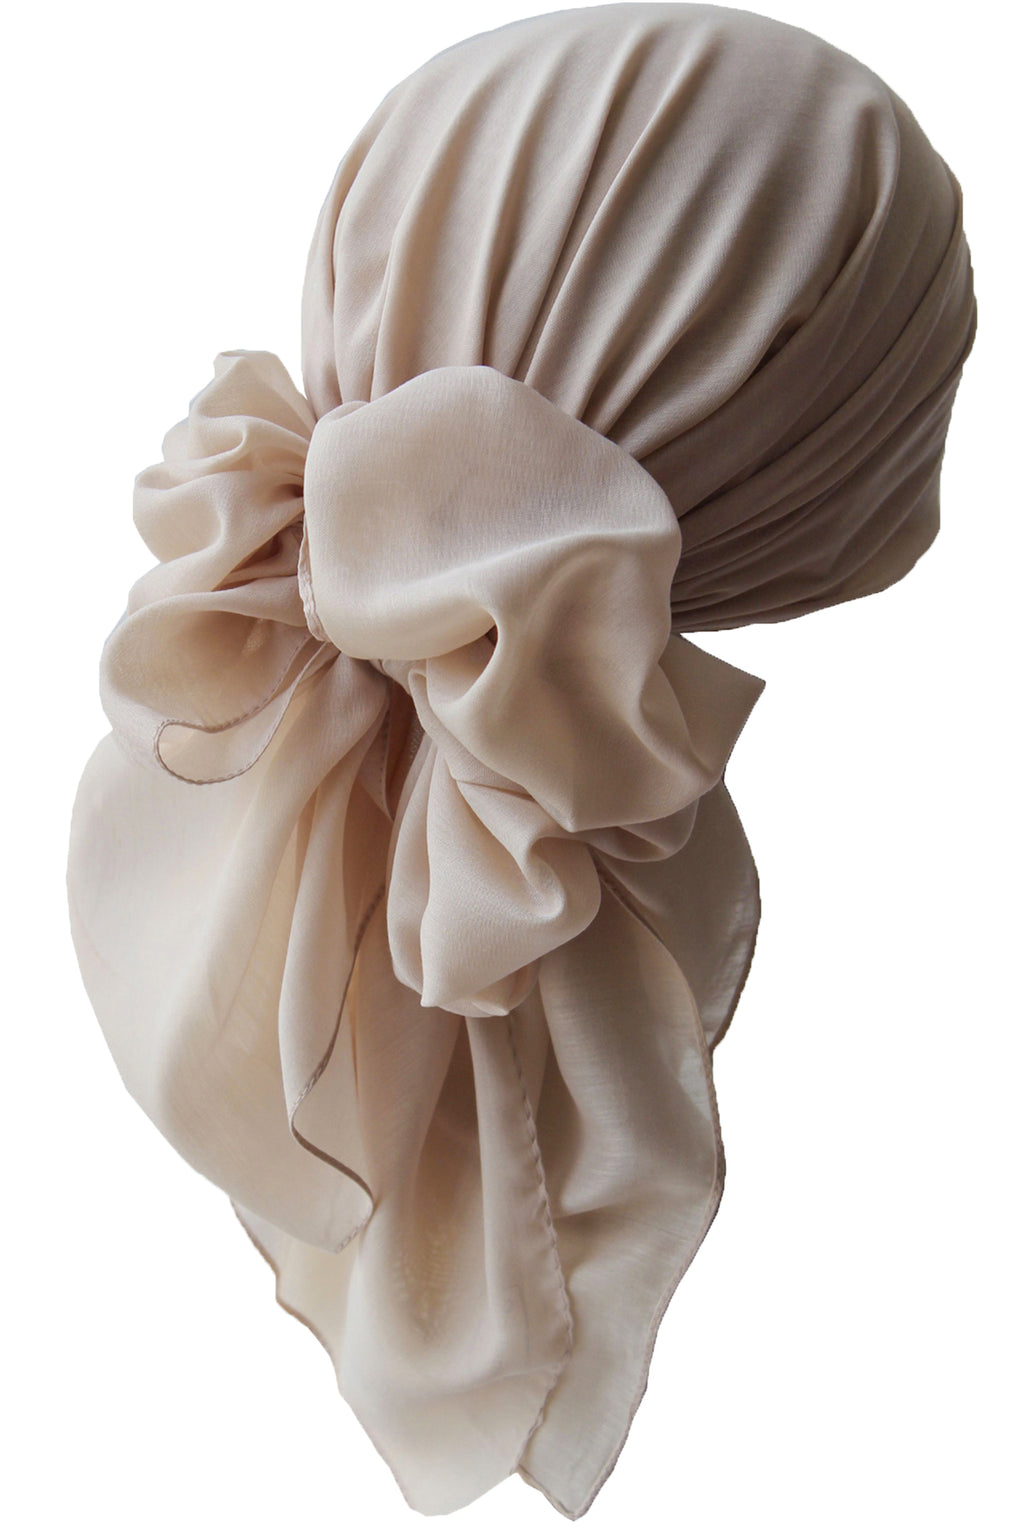 Everyday Square Head Scarf - Plain Silky Beige